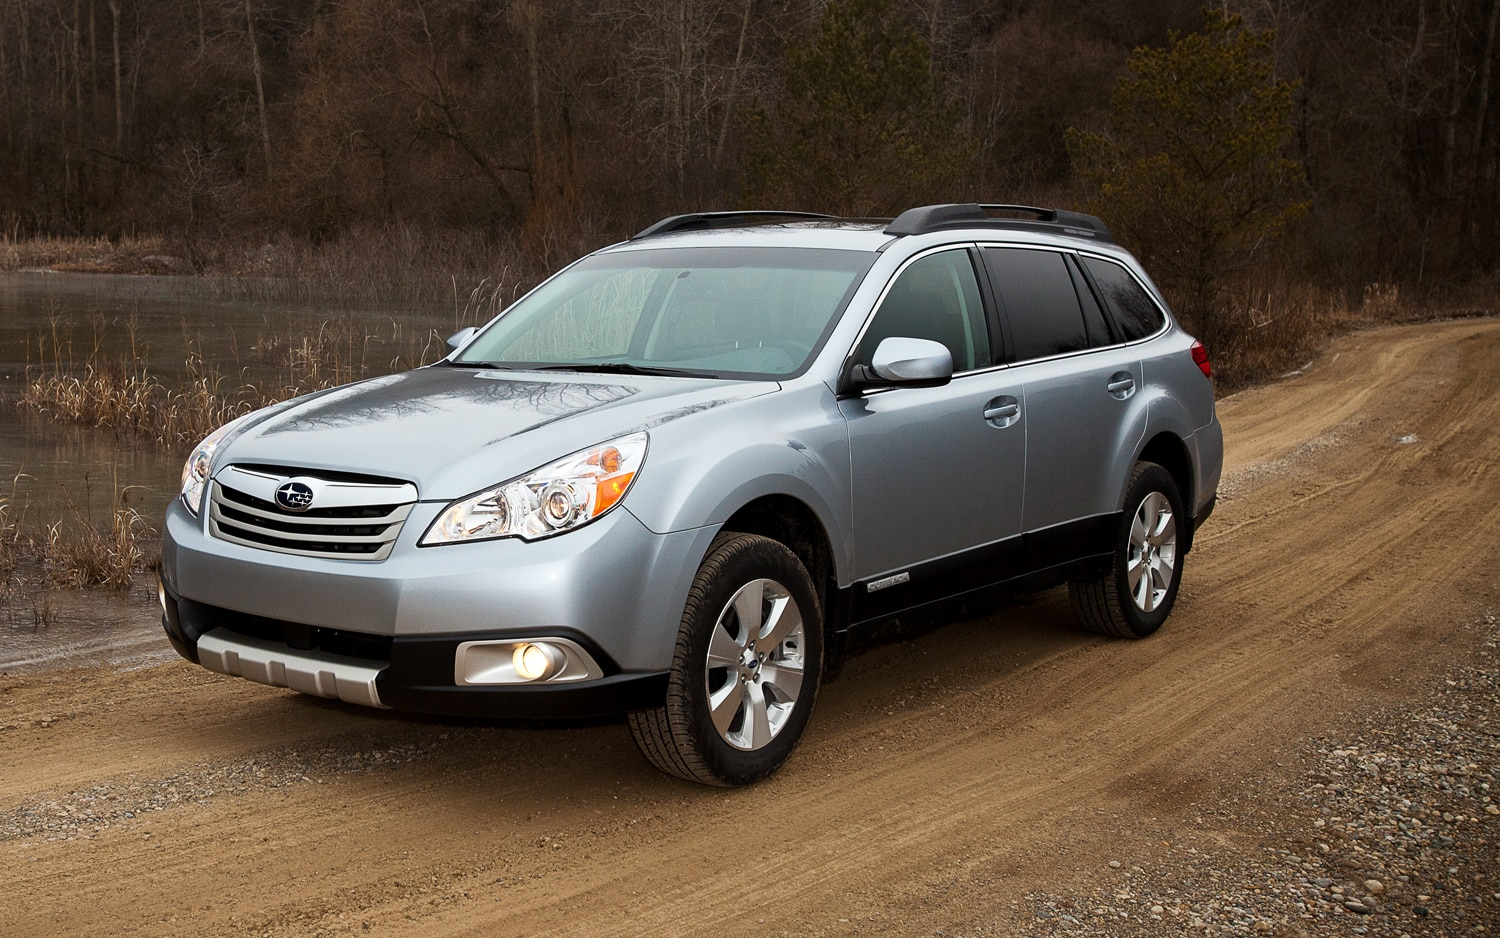 2012 Subaru Outback 3 6R Front Left View1